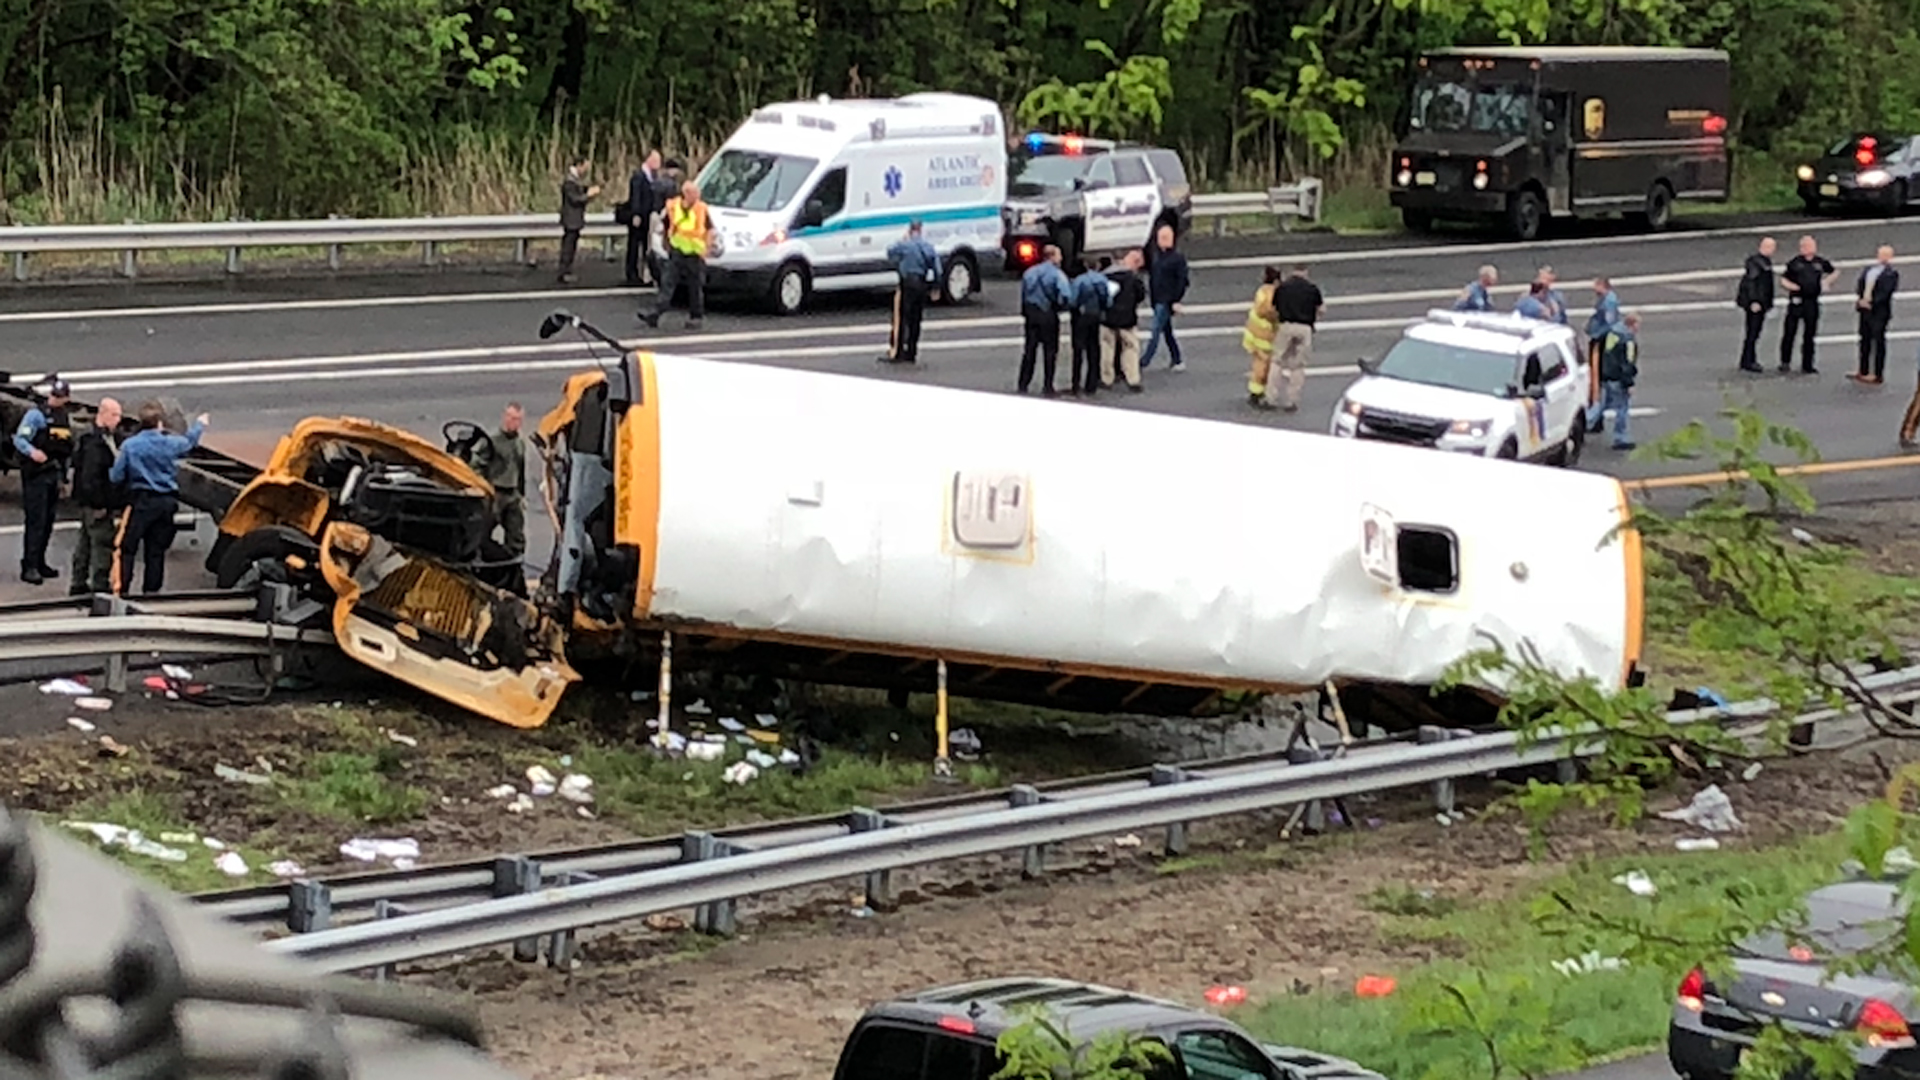 A bus overturned after a crash involving a dump truck in New Jersey on May 17, 2018. (Credit: Henry Rosoff / WPIX)